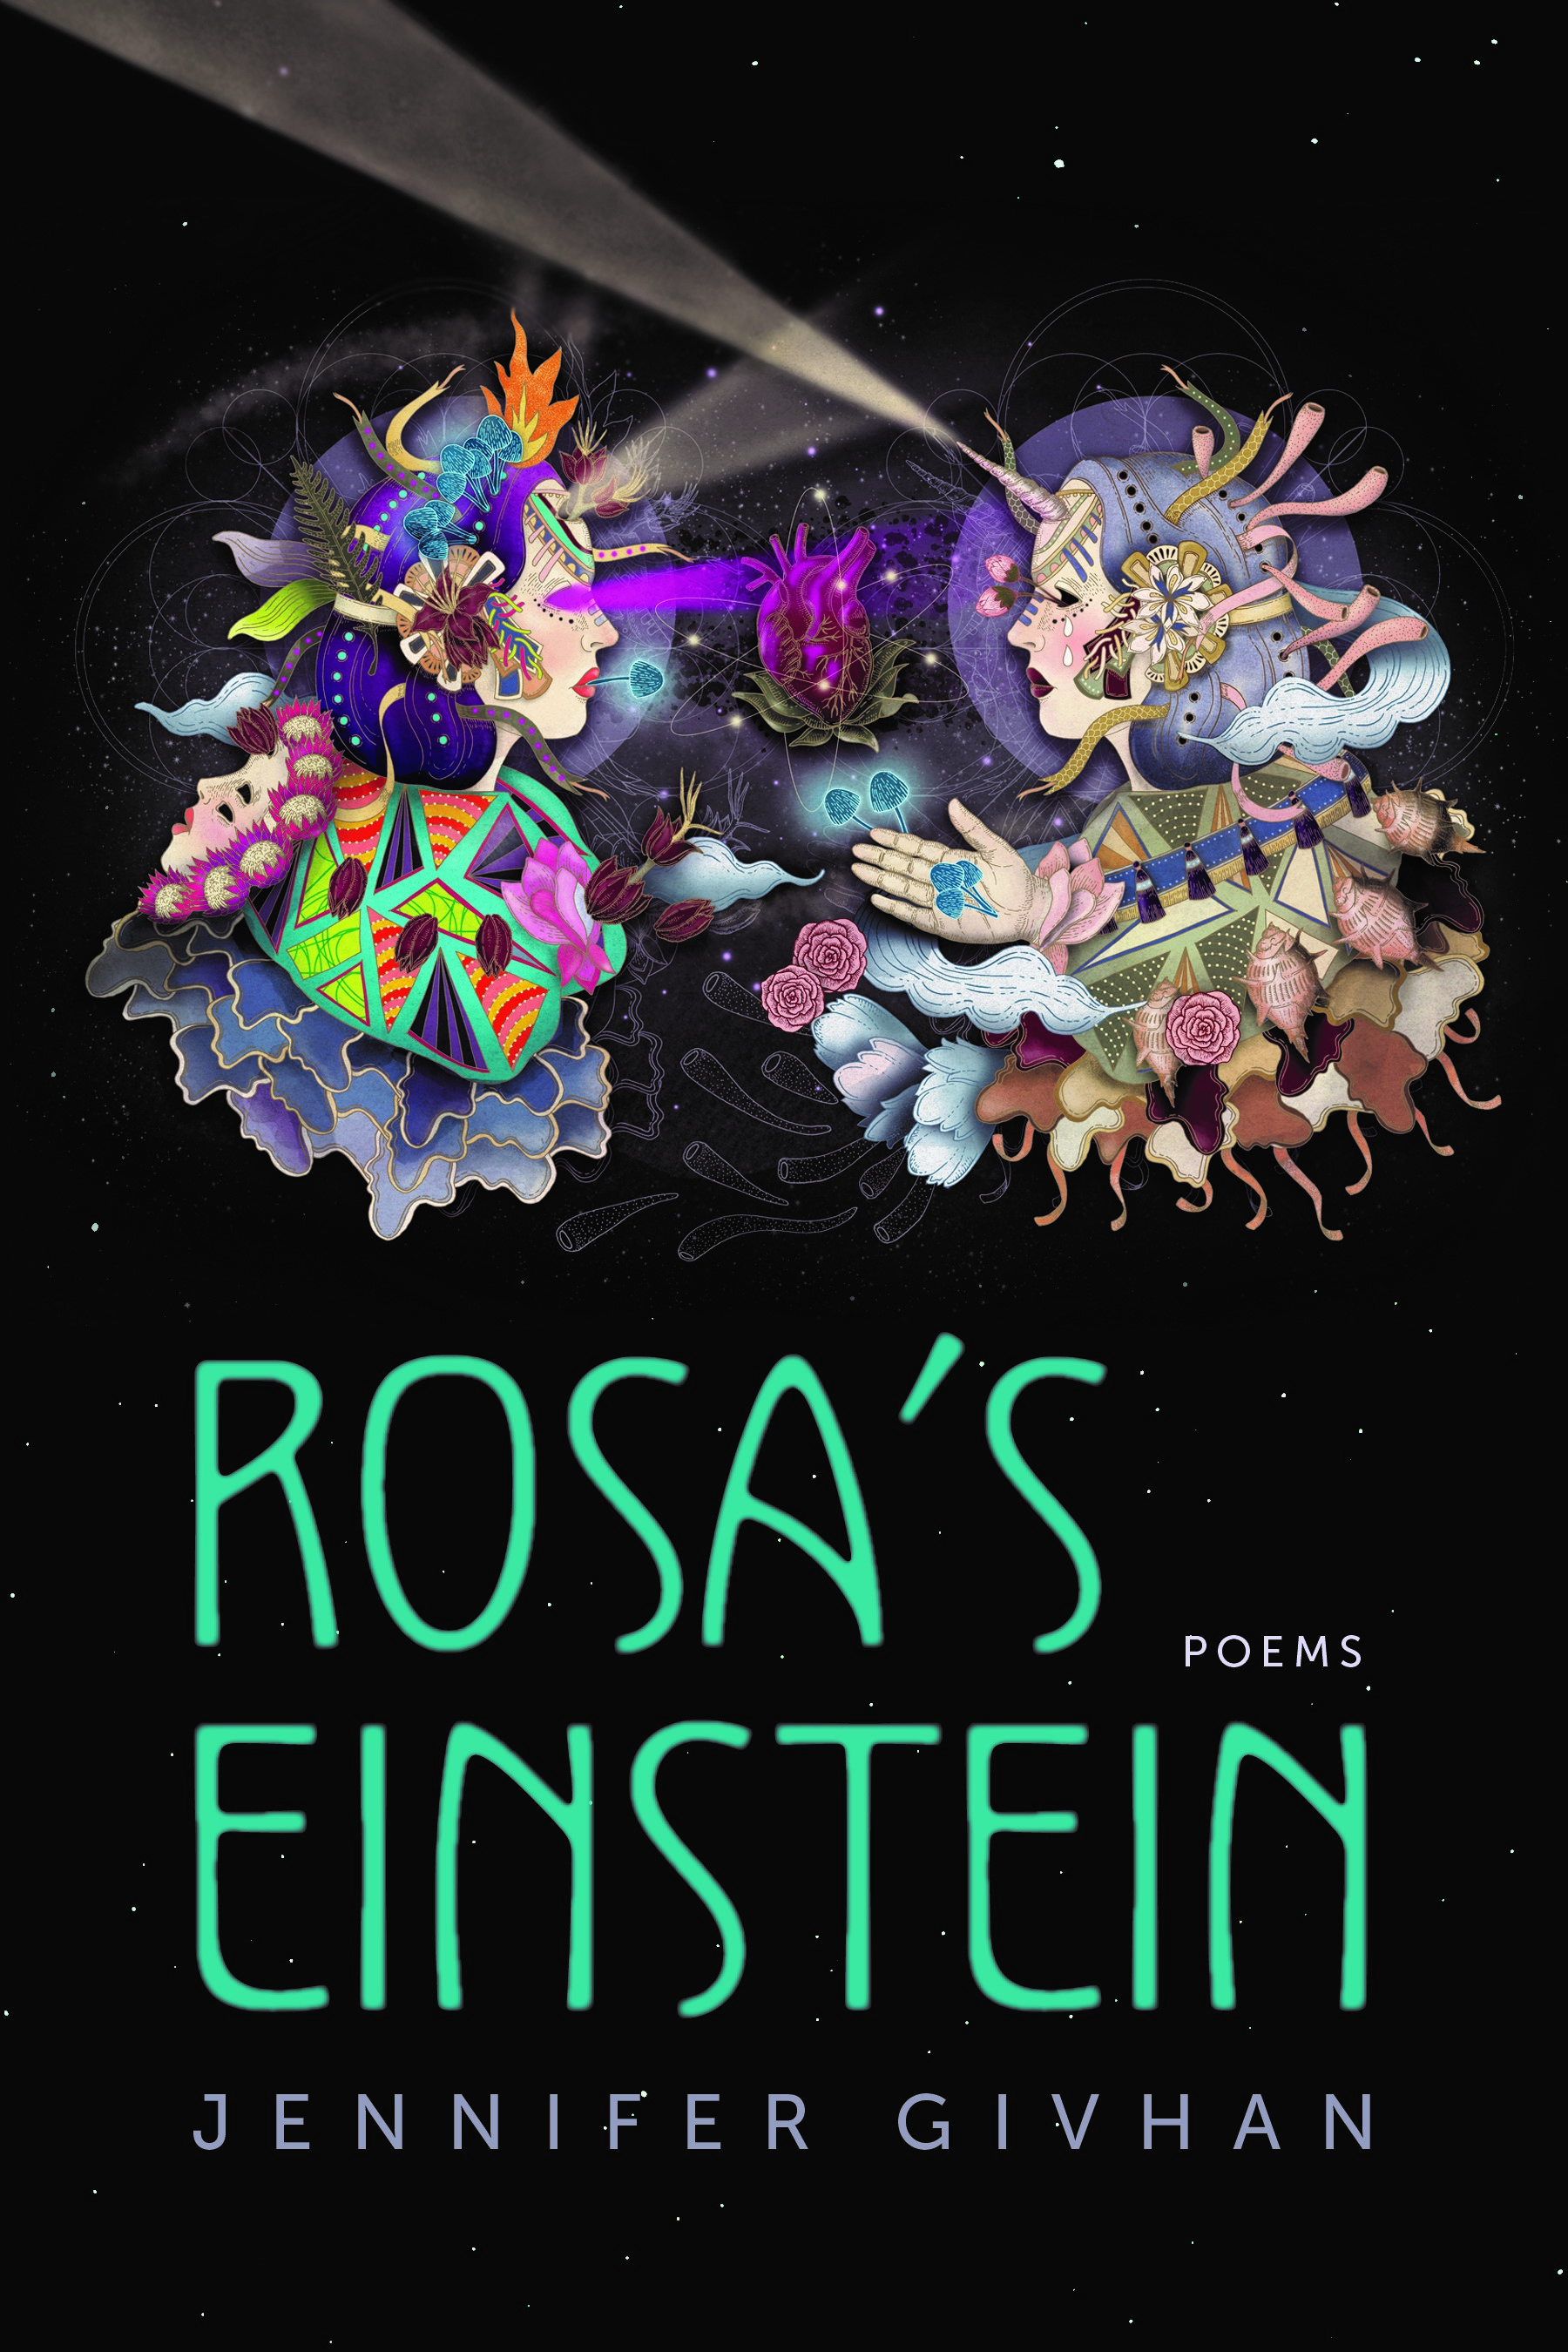 rosa's einstein update